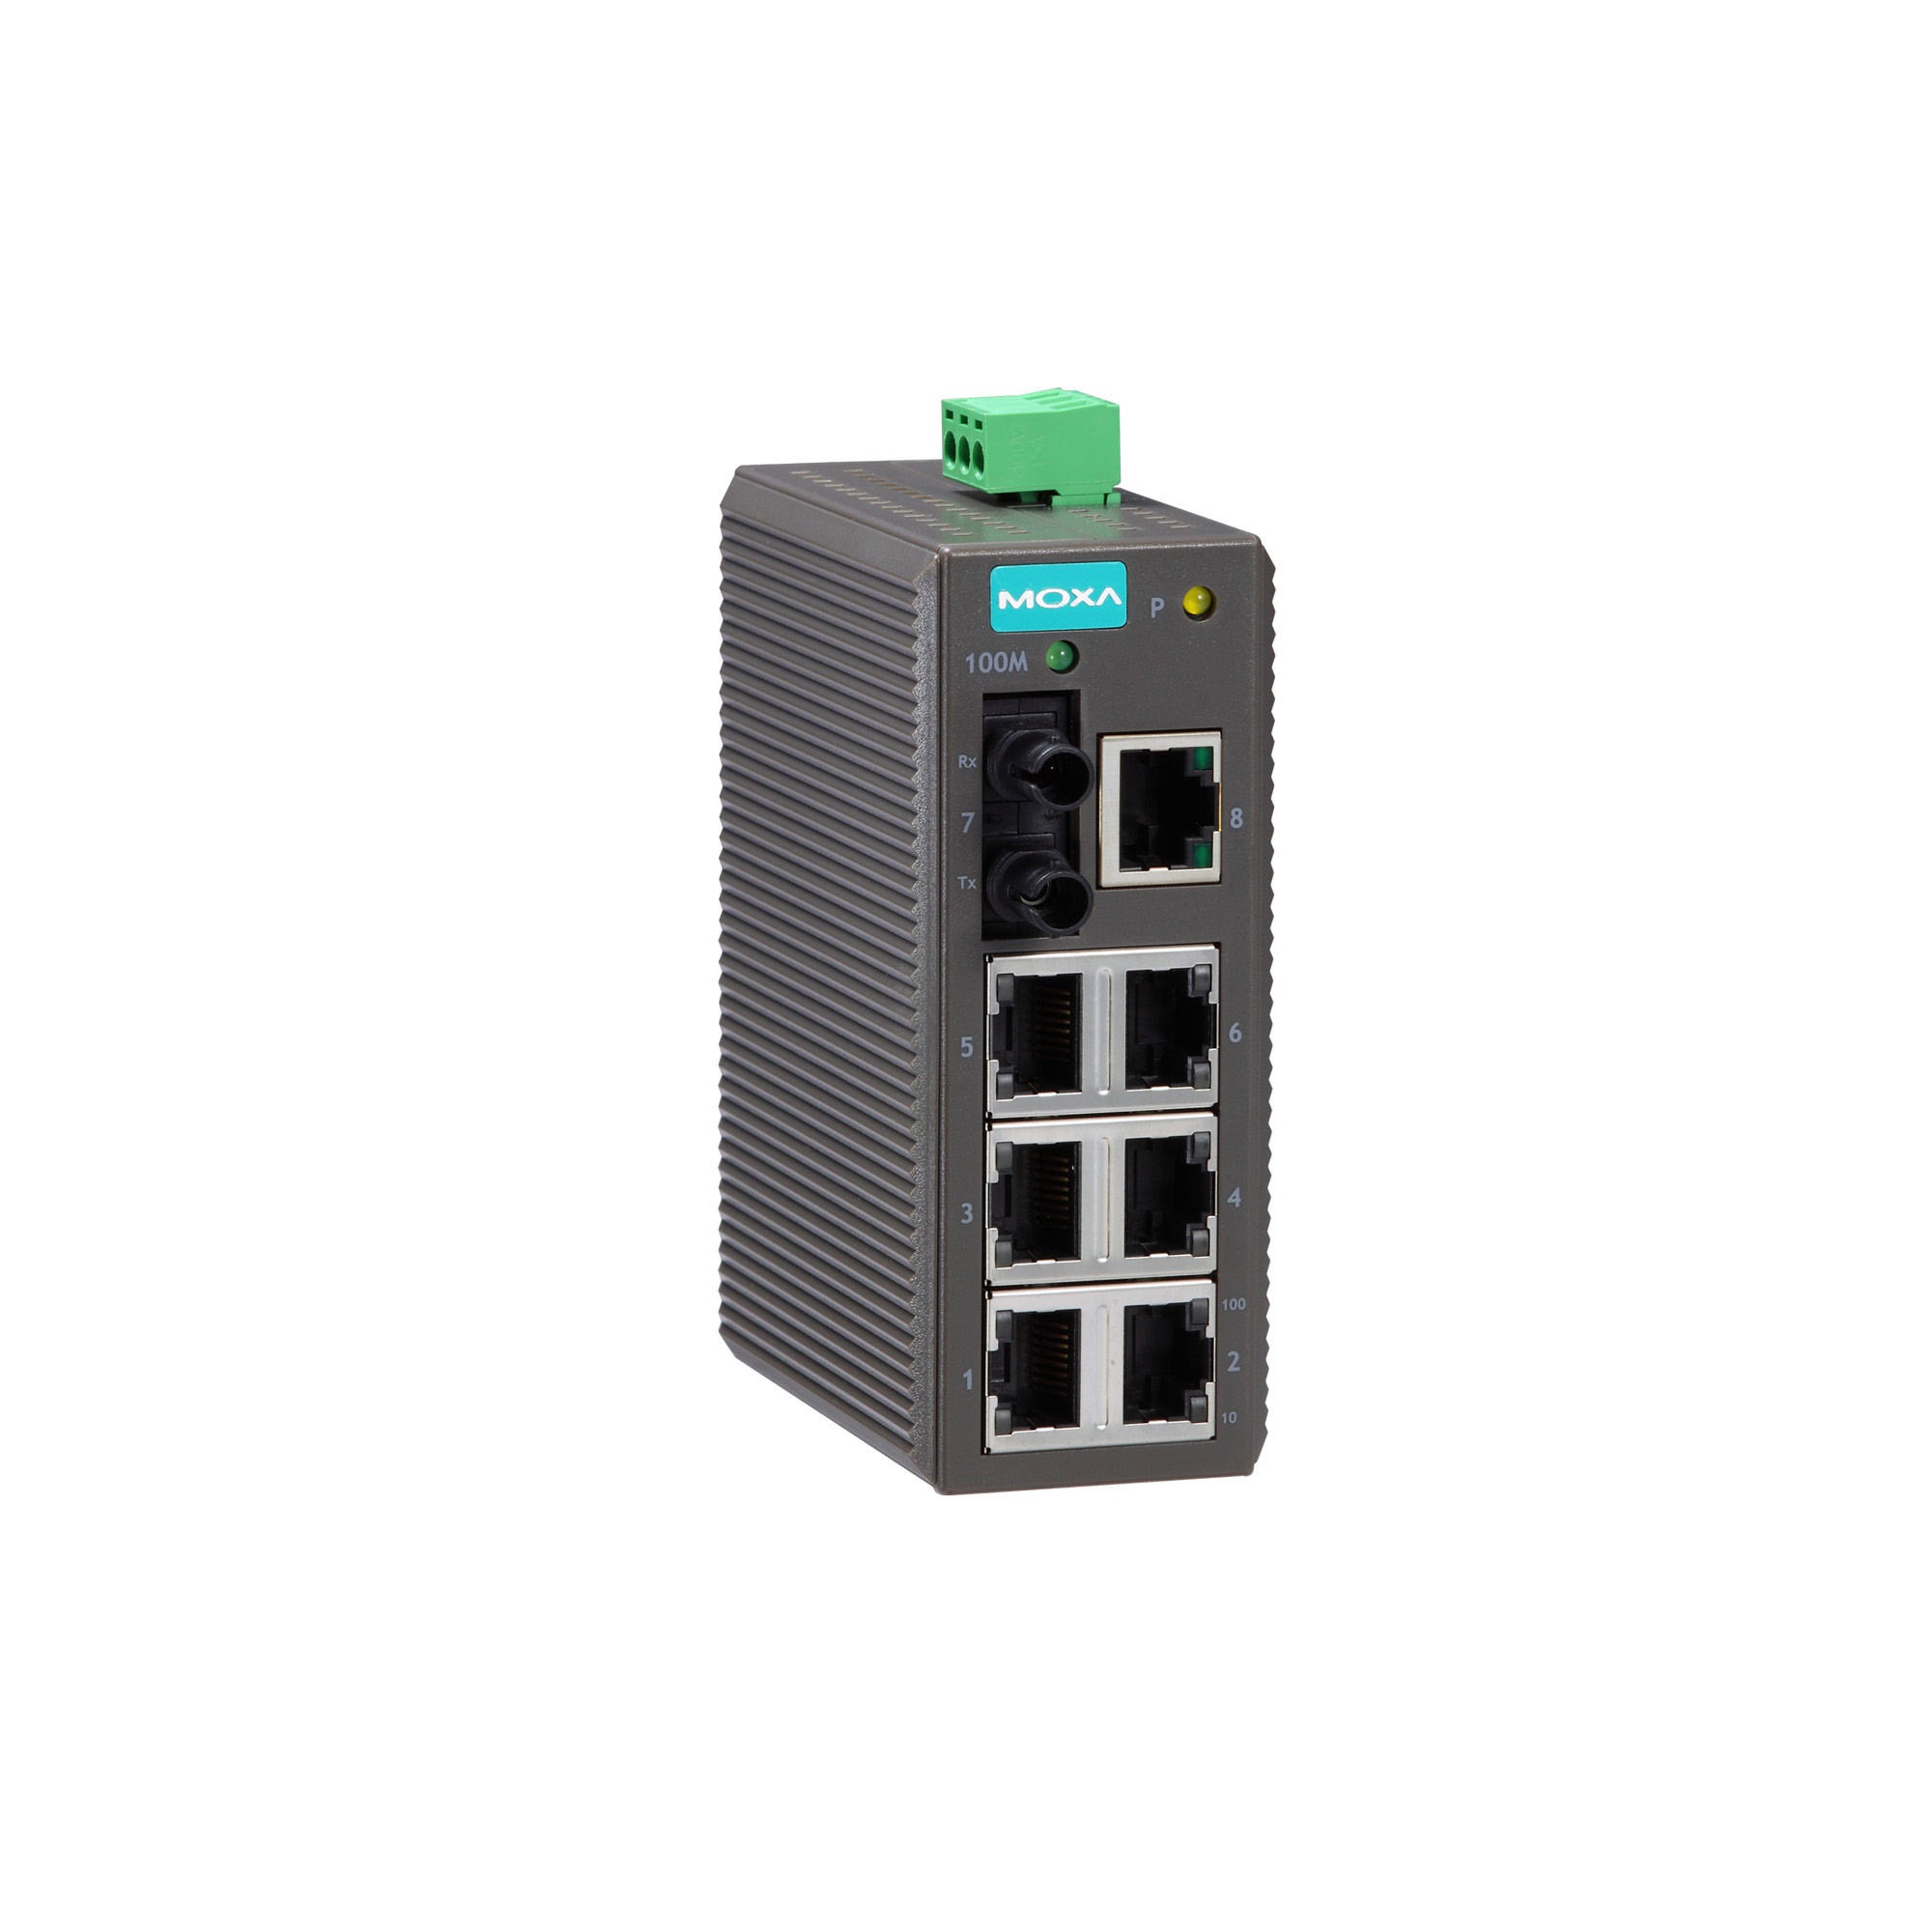 EDS-208 Series - Unmanaged Switches   MOXA